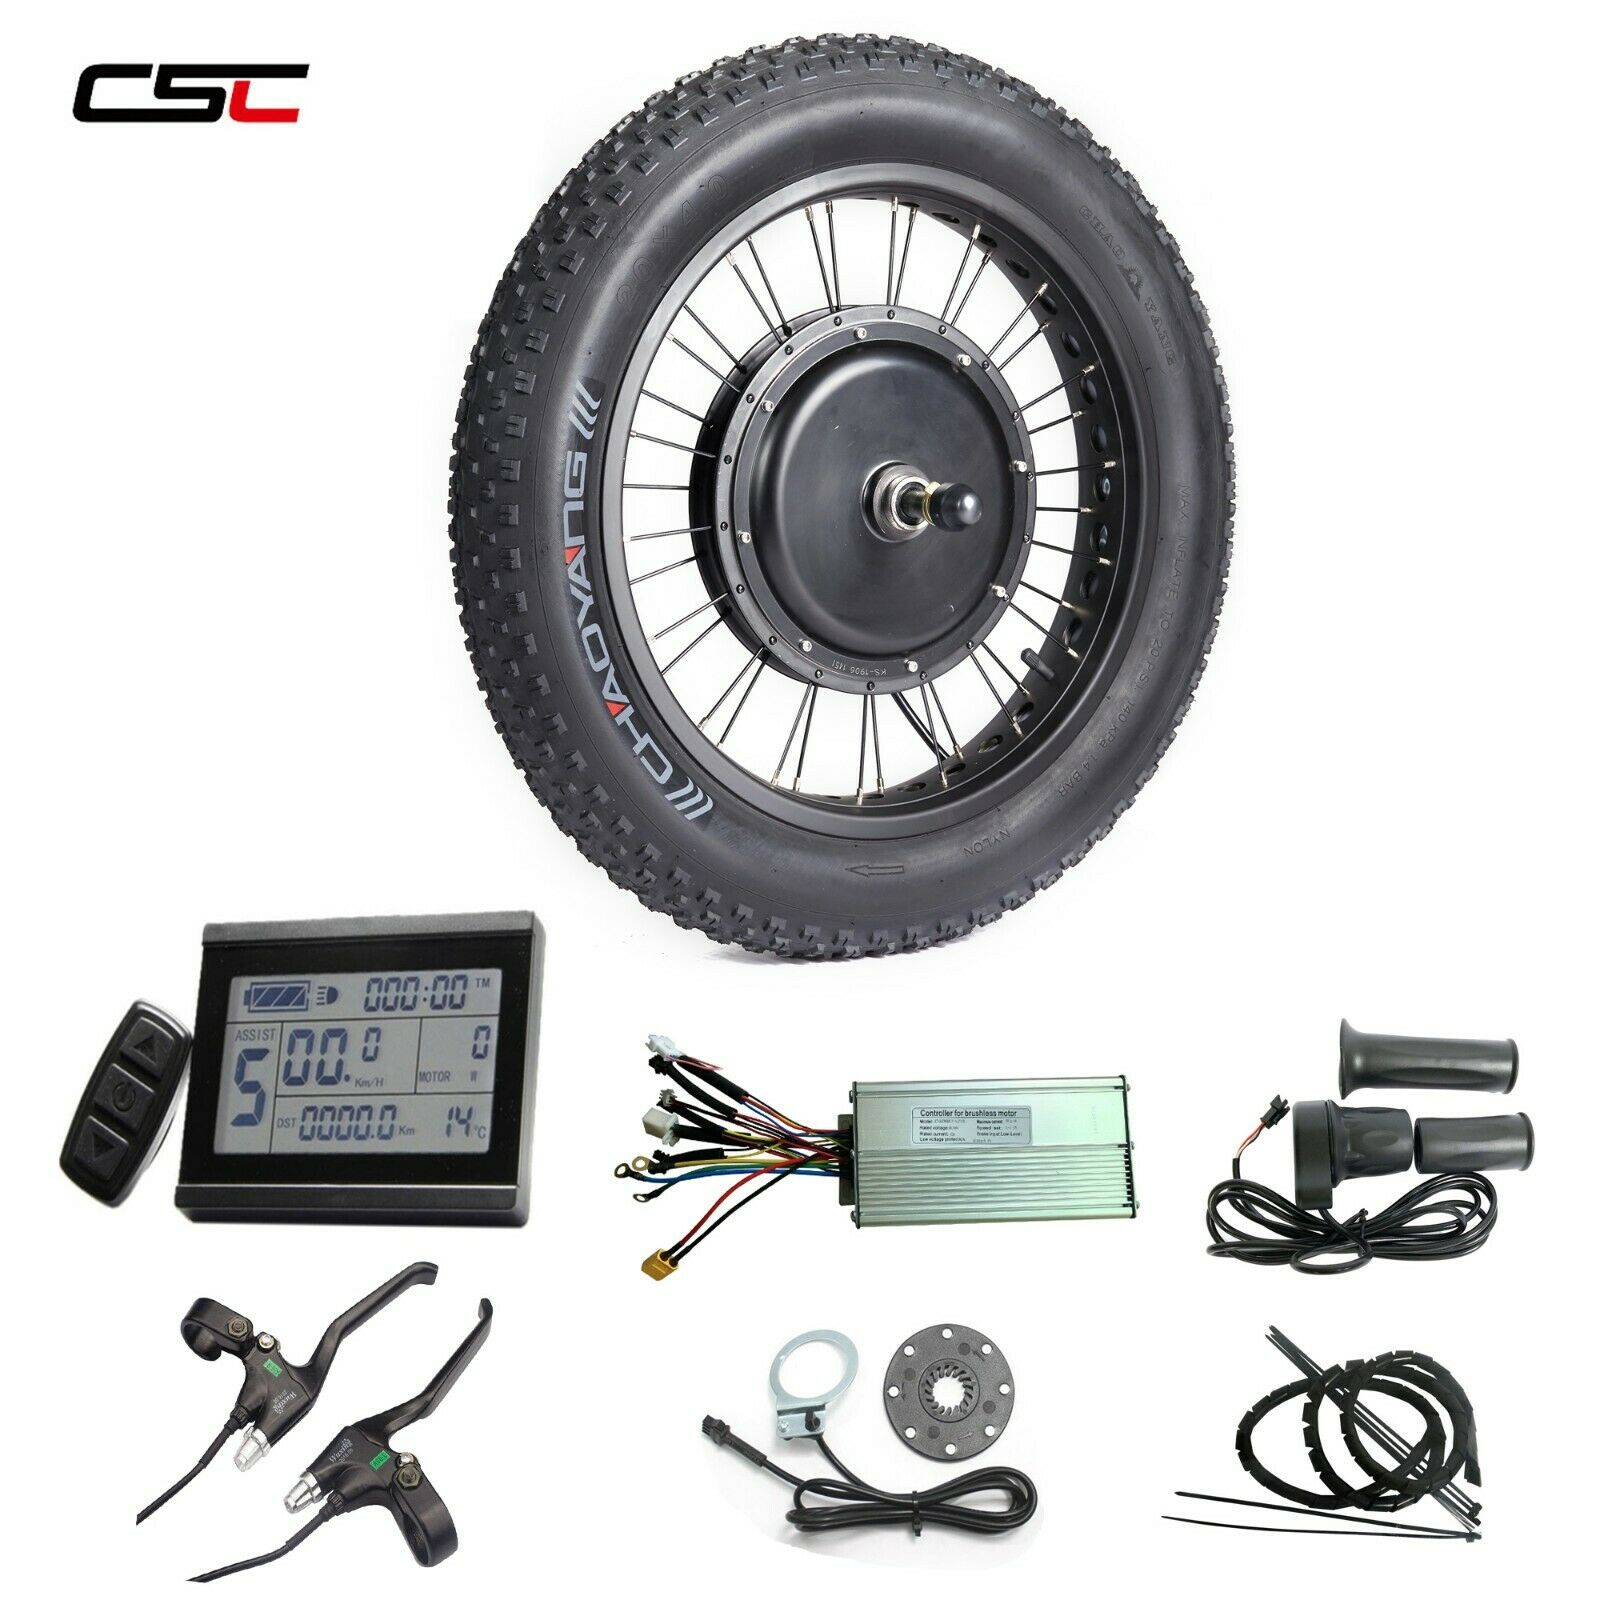 48V Anticharge divertiuominitoction fat tire e bicicletta conversion kit 1500W with wide tyre